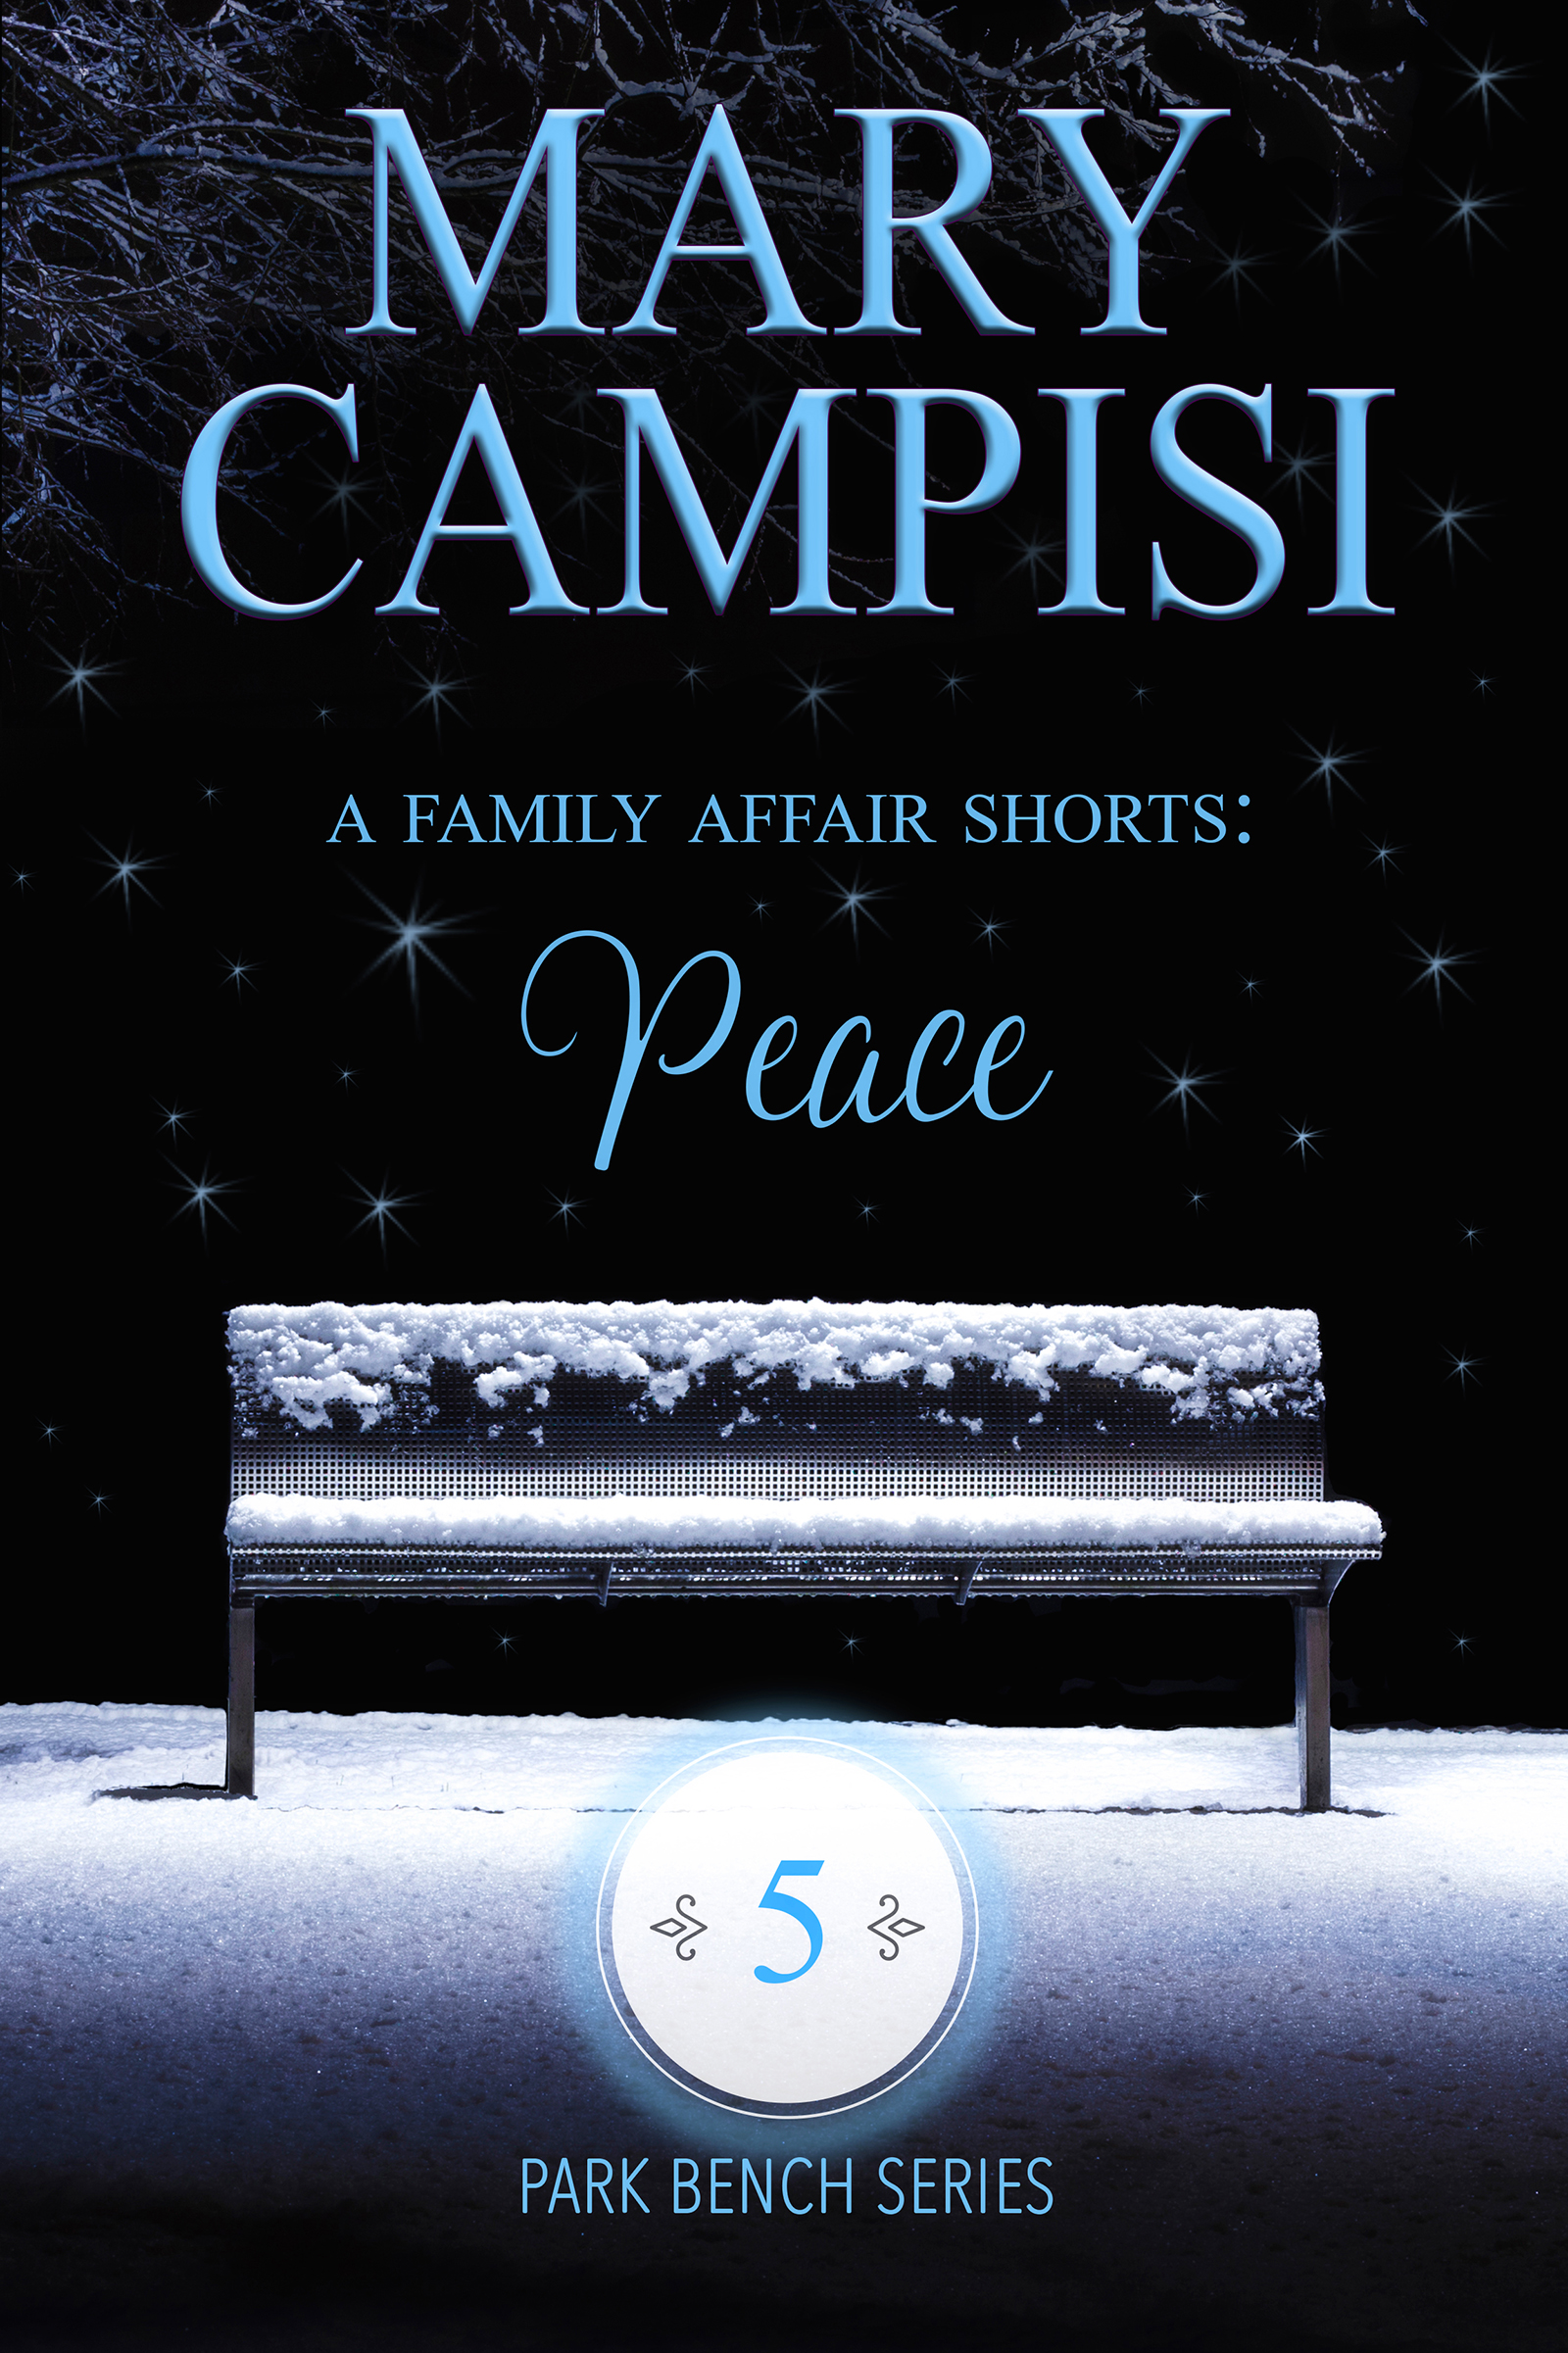 A Family Affair Shorts: Peace